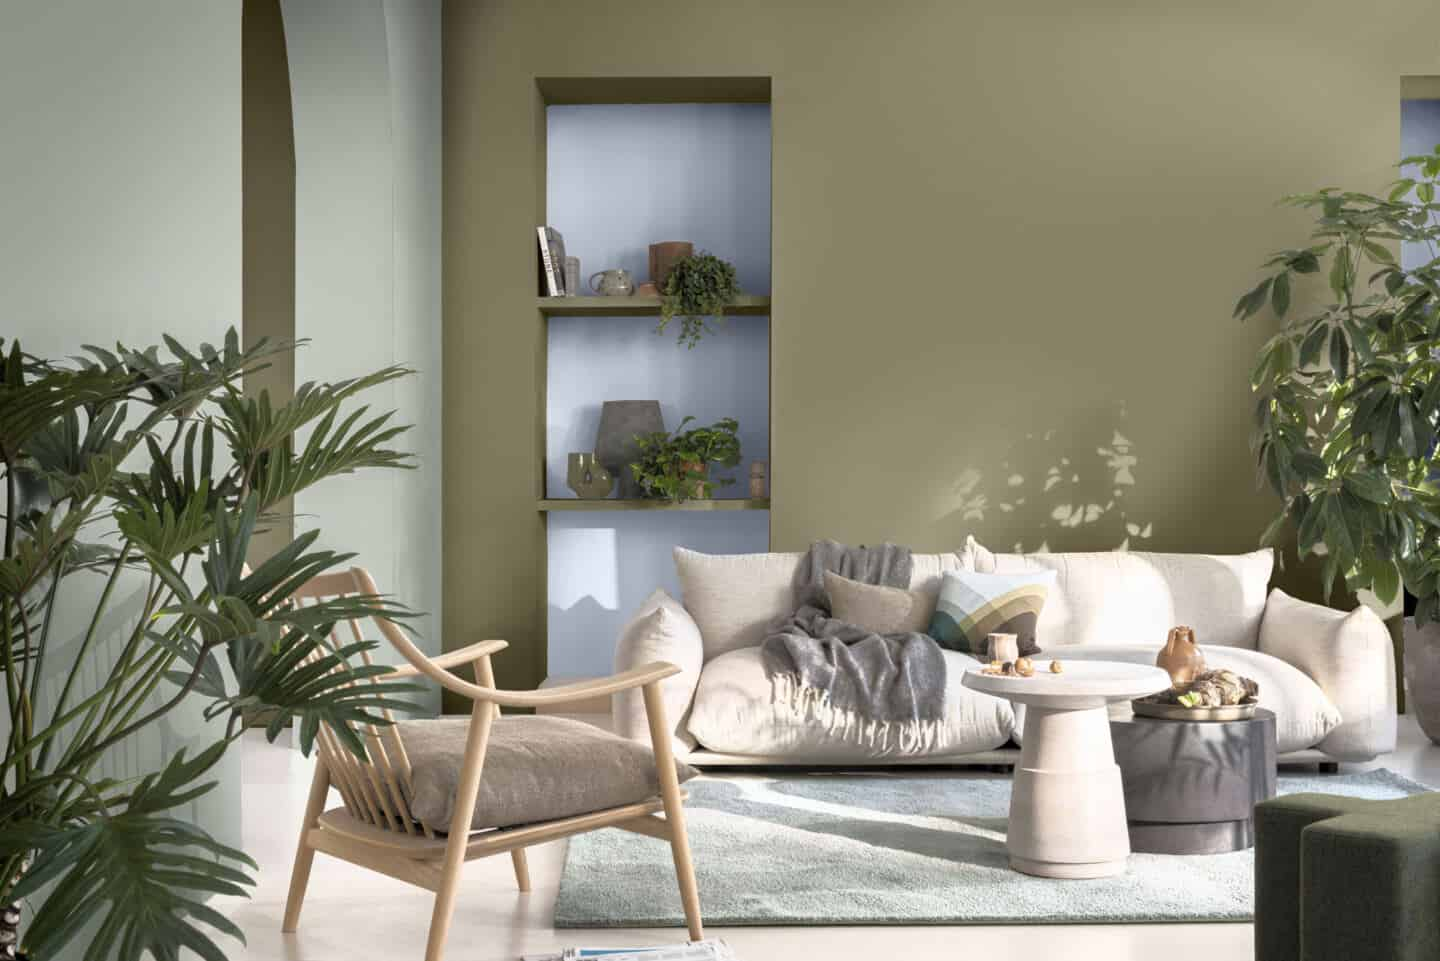 A living room with recessed shelving painted in Dulux Colour of the Year 2022 Bright Skies